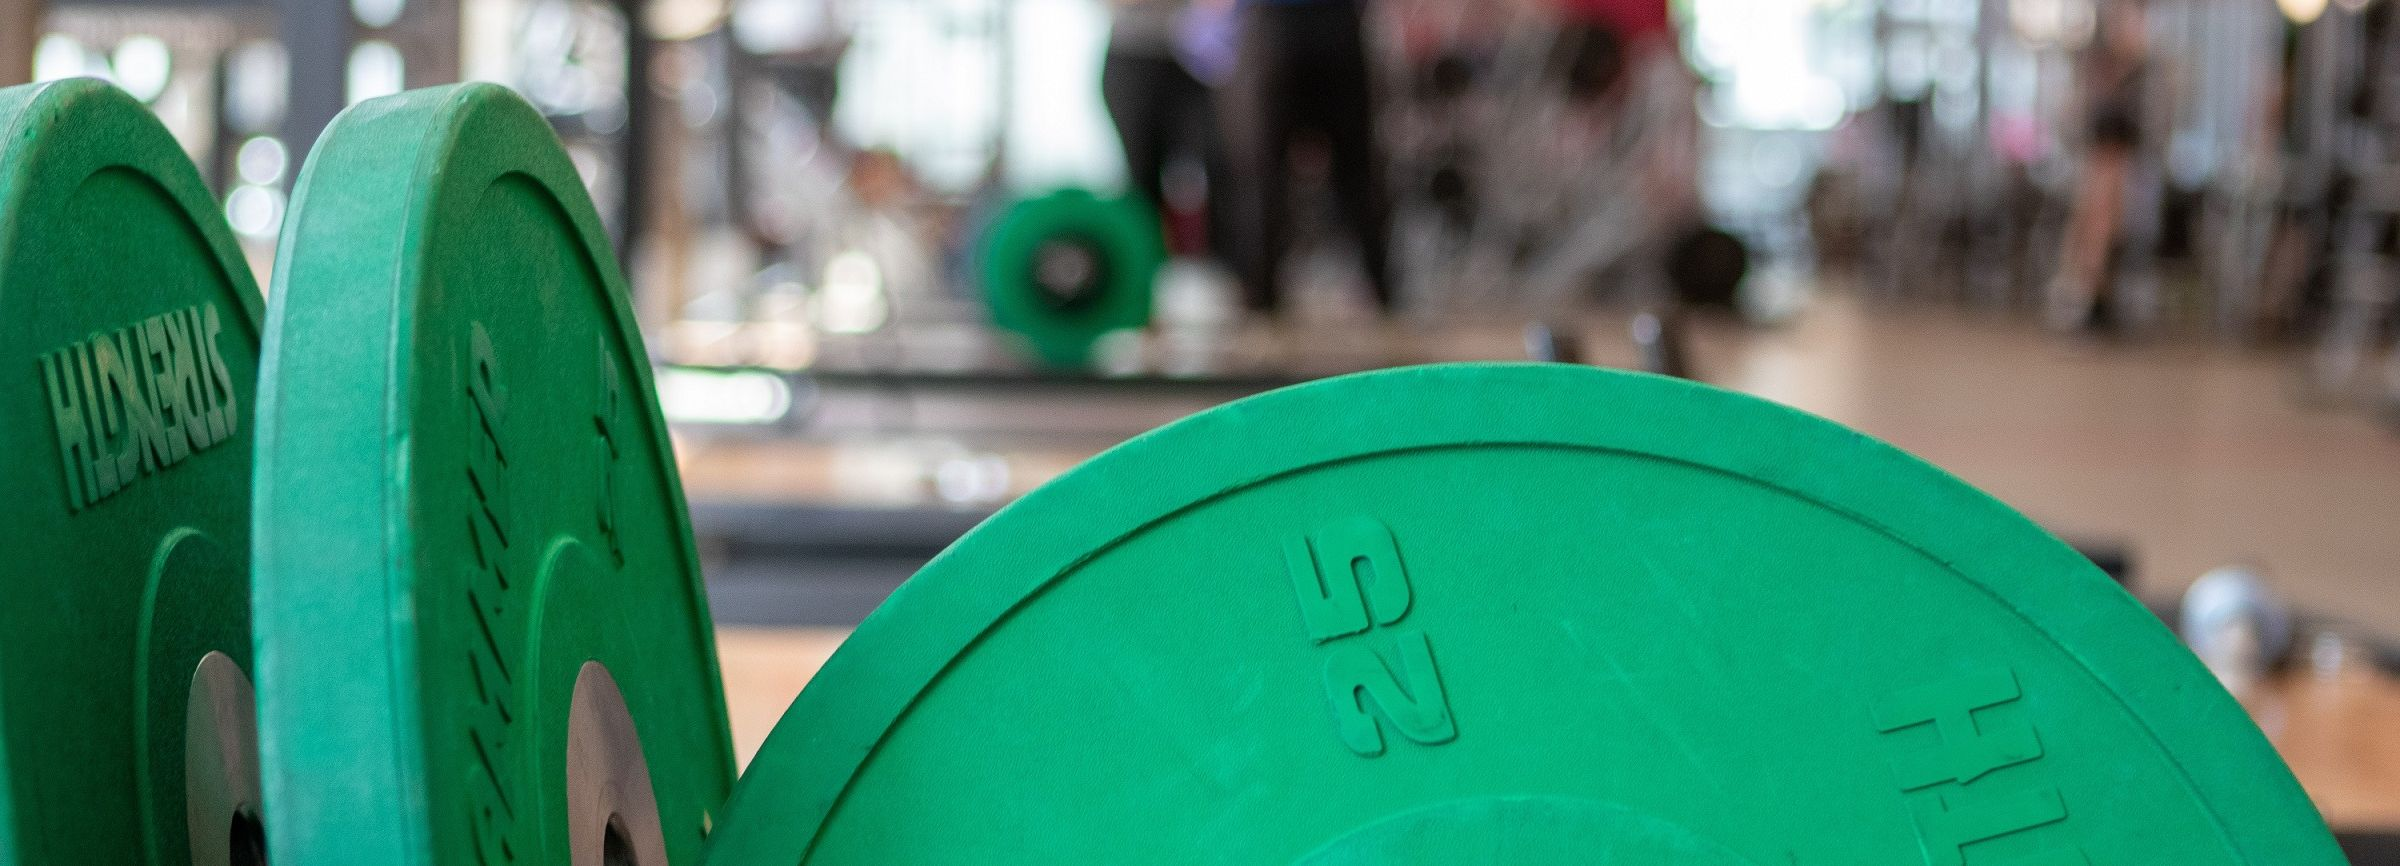 A shot of green weight plates sitting against each other in the Weight Room.